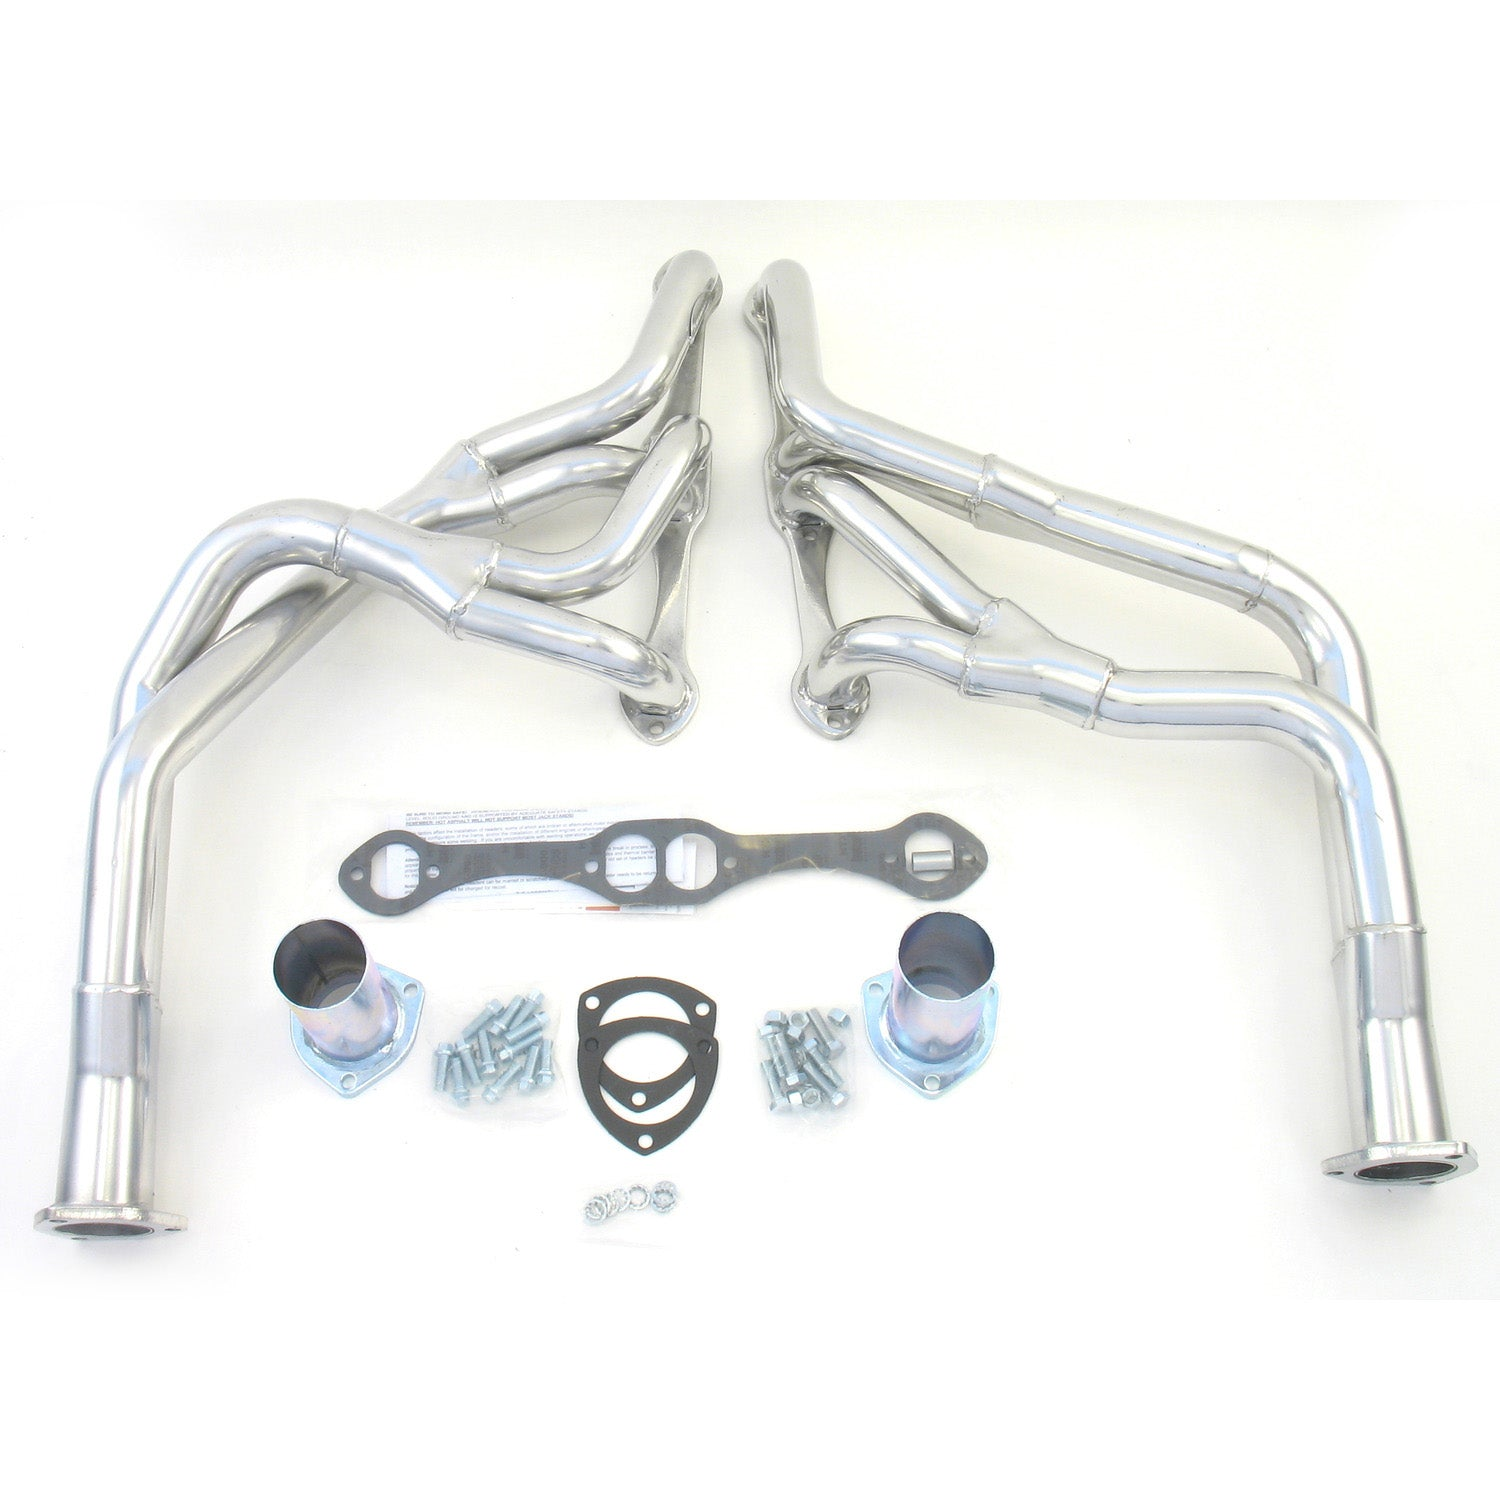 "Doug's Headers D375Y 1 5/8"" Tri-Y Header Chevrolet Camaro Small Block Chevrolet 67-74 Metallic Ceramic Coating"